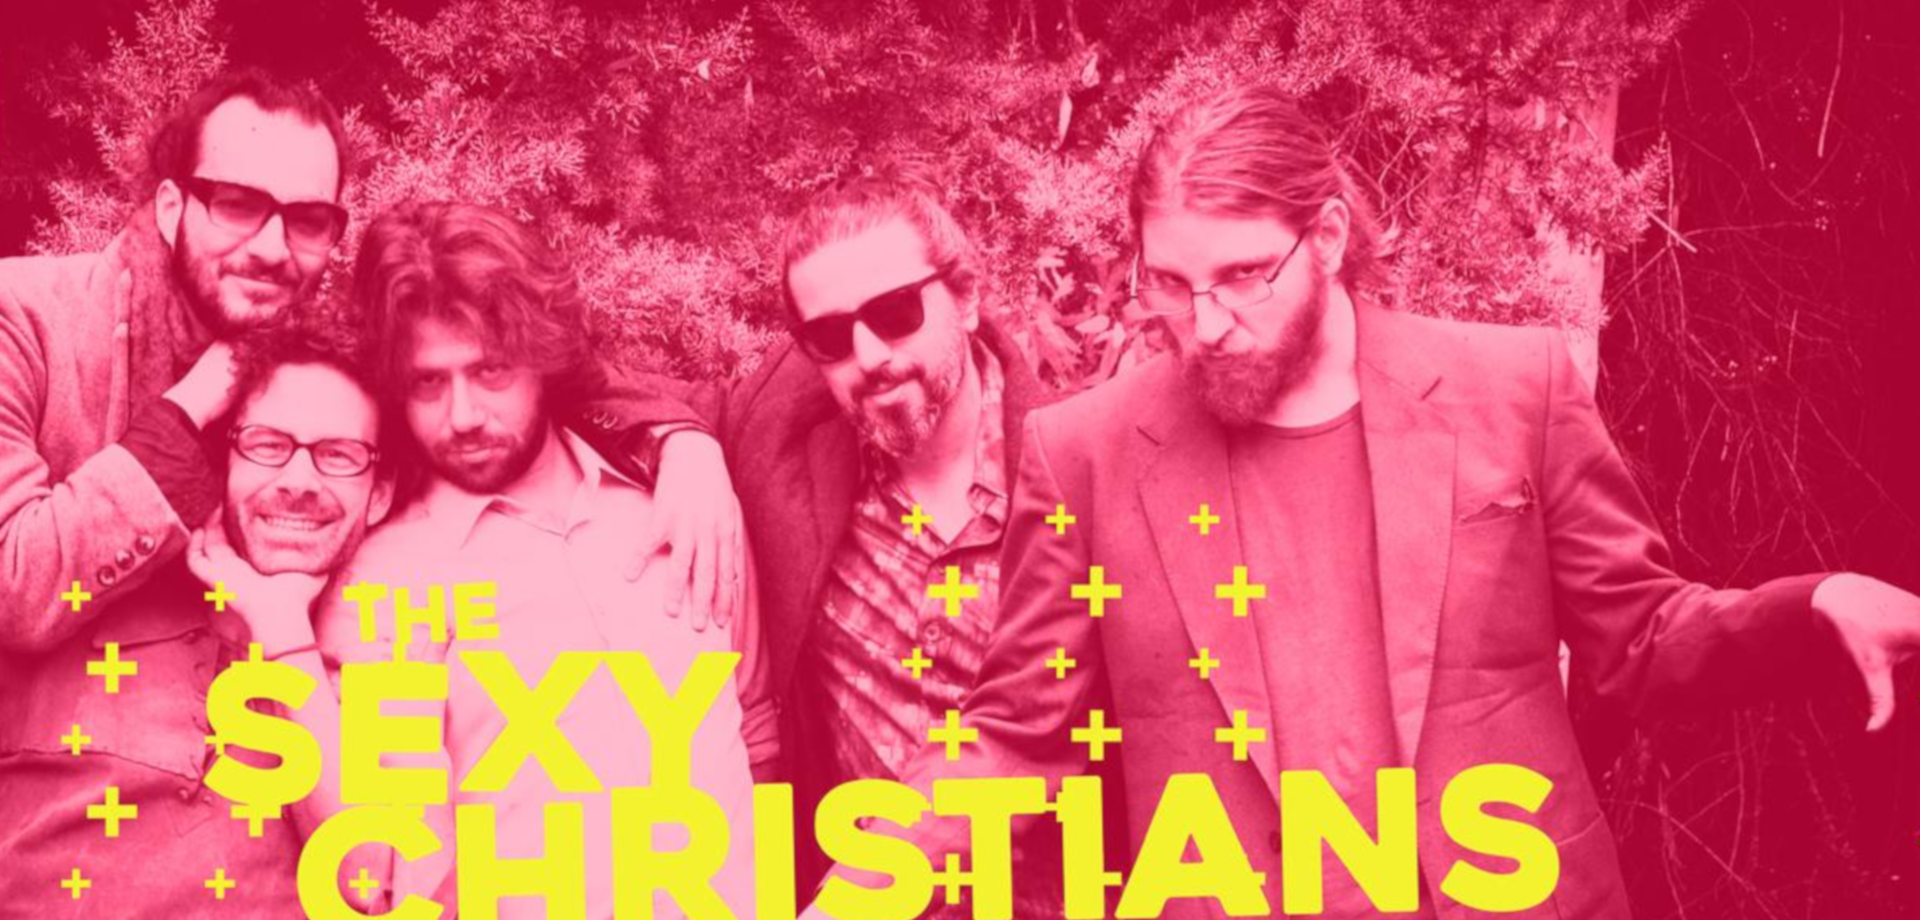 The sexy Christians